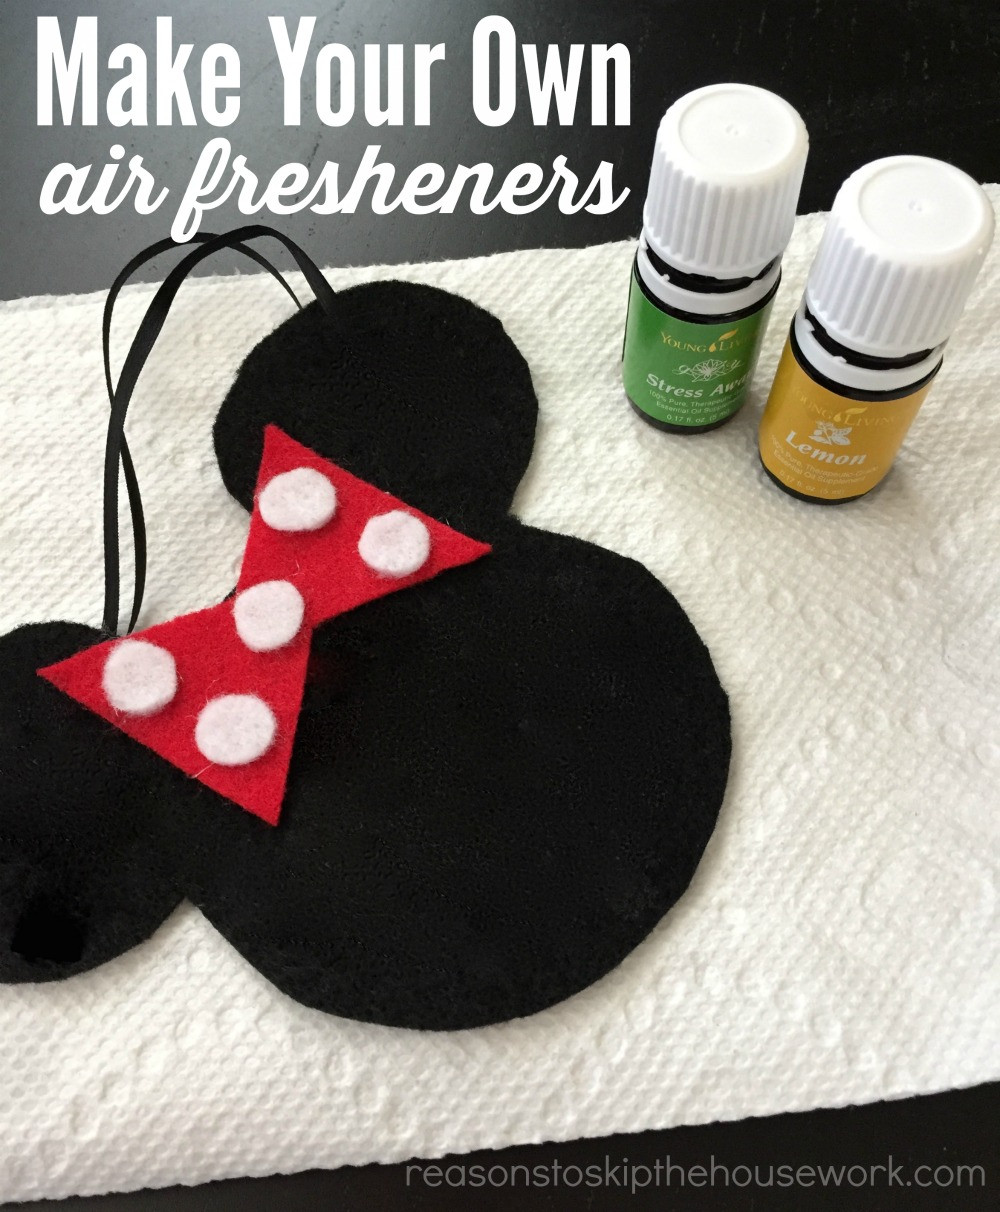 Best ideas about DIY Car Air Freshener . Save or Pin DIY Car Air Fresheners REASONS TO SKIP THE HOUSEWORK Now.